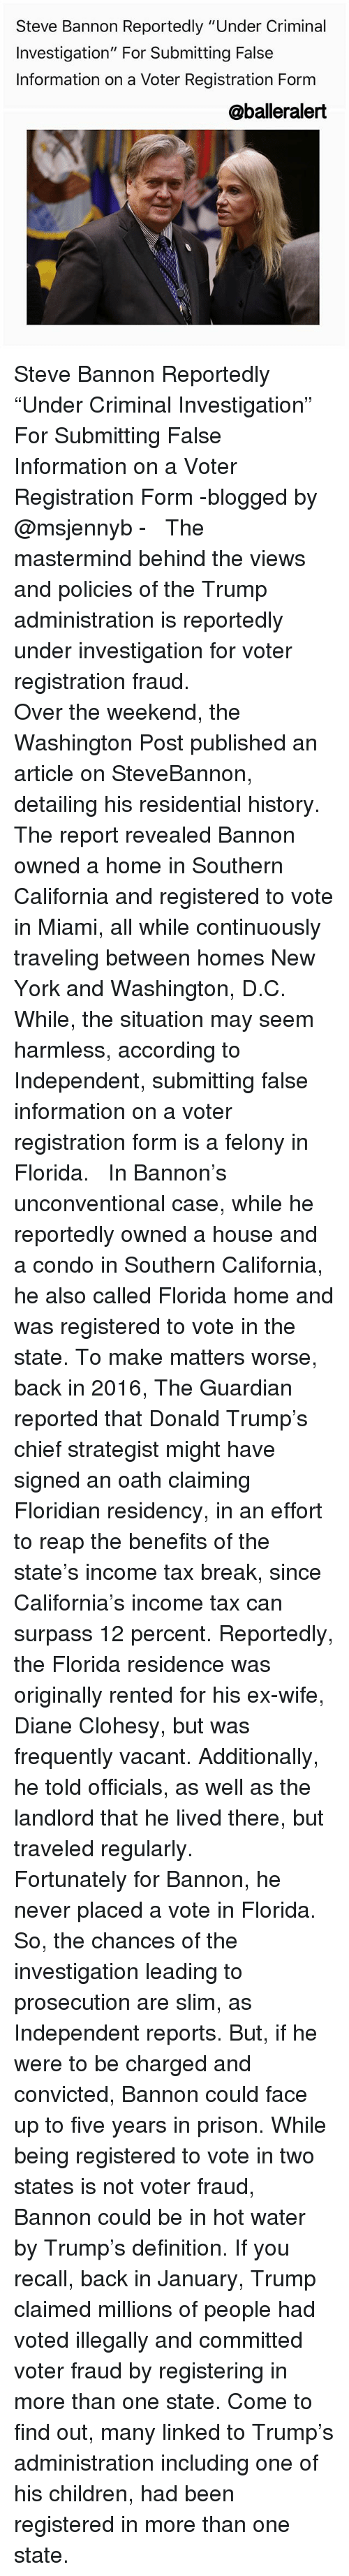 """Memes, 🤖, and Miami: Steve Bannon Reportedly """"Under Criminal  Investigation"""" For Submitting False  Information on a Voter Registration Form  Caballeralert Steve Bannon Reportedly """"Under Criminal Investigation"""" For Submitting False Information on a Voter Registration Form -blogged by @msjennyb - ⠀⠀⠀⠀⠀⠀⠀ ⠀⠀⠀⠀⠀⠀⠀ The mastermind behind the views and policies of the Trump administration is reportedly under investigation for voter registration fraud. ⠀⠀⠀⠀⠀⠀⠀ ⠀⠀⠀⠀⠀⠀⠀ Over the weekend, the Washington Post published an article on SteveBannon, detailing his residential history. The report revealed Bannon owned a home in Southern California and registered to vote in Miami, all while continuously traveling between homes New York and Washington, D.C. While, the situation may seem harmless, according to Independent, submitting false information on a voter registration form is a felony in Florida. ⠀⠀⠀⠀⠀⠀⠀ ⠀⠀⠀⠀⠀⠀⠀ In Bannon's unconventional case, while he reportedly owned a house and a condo in Southern California, he also called Florida home and was registered to vote in the state. To make matters worse, back in 2016, The Guardian reported that Donald Trump's chief strategist might have signed an oath claiming Floridian residency, in an effort to reap the benefits of the state's income tax break, since California's income tax can surpass 12 percent. Reportedly, the Florida residence was originally rented for his ex-wife, Diane Clohesy, but was frequently vacant. Additionally, he told officials, as well as the landlord that he lived there, but traveled regularly. ⠀⠀⠀⠀⠀⠀⠀ ⠀⠀⠀⠀⠀⠀⠀ Fortunately for Bannon, he never placed a vote in Florida. So, the chances of the investigation leading to prosecution are slim, as Independent reports. But, if he were to be charged and convicted, Bannon could face up to five years in prison. While being registered to vote in two states is not voter fraud, Bannon could be in hot water by Trump's definition. If you recall, back in January, Trump claimed mil"""